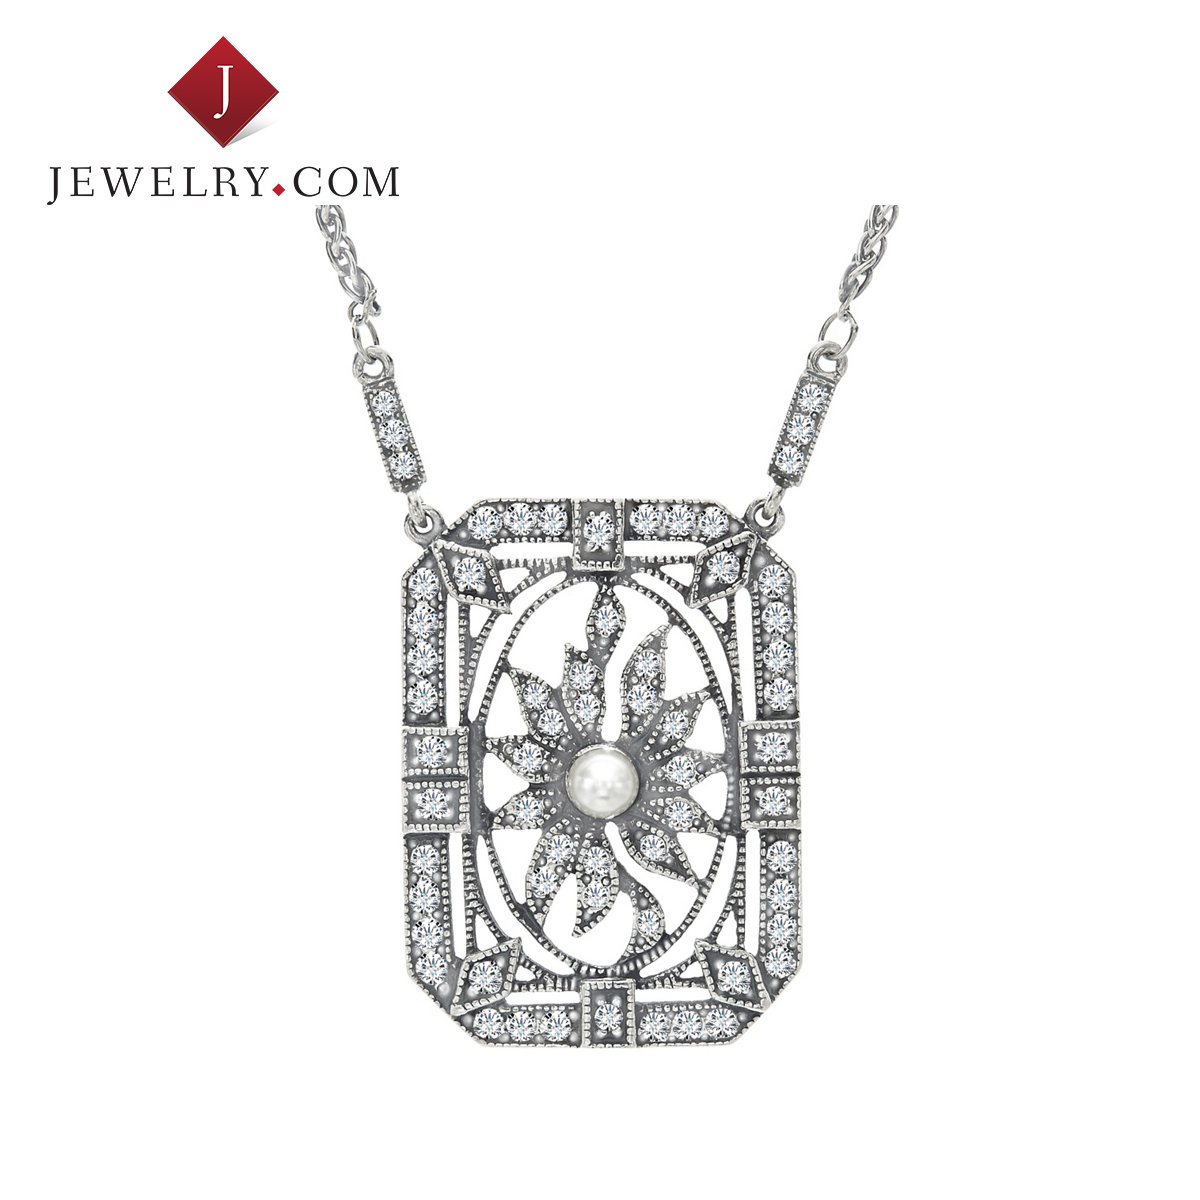 Van kempen hollow square pendant female models 925 silver swarovski crystal pearl jewelry charm